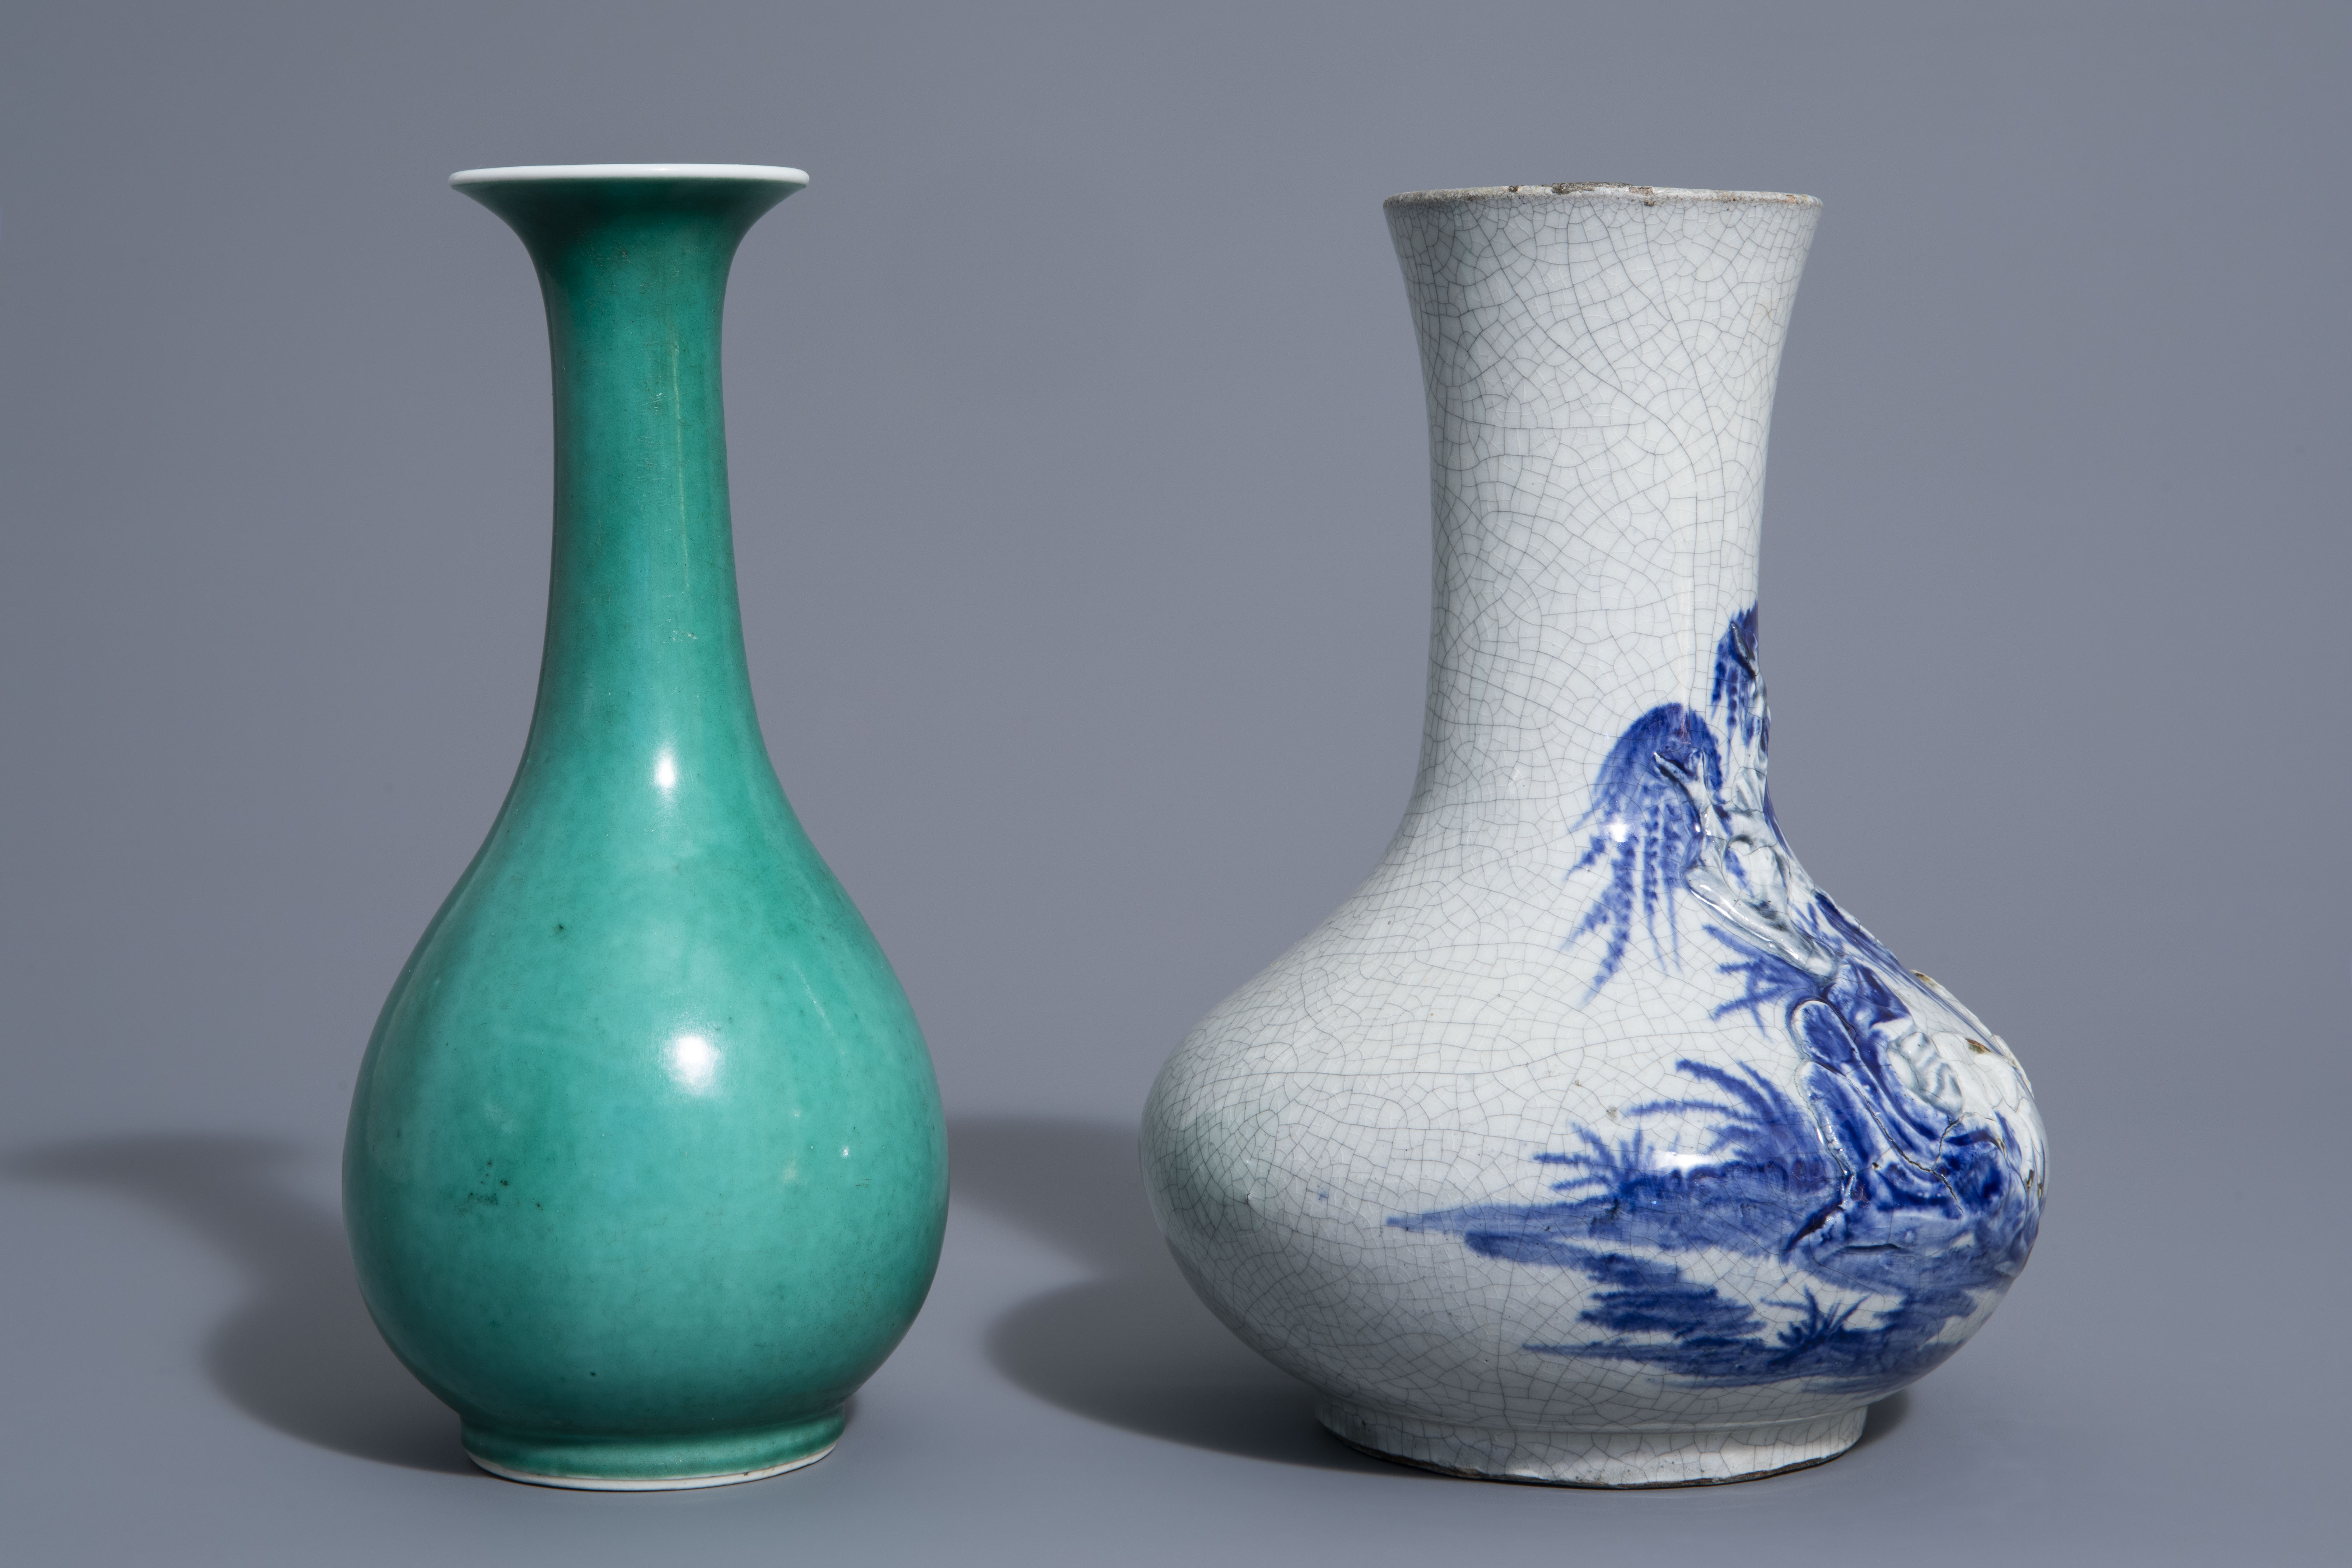 A Chinese blue & white crackle glazed vase, a monochrome green vase and a brushwasher, 19th/20th C. - Image 3 of 13